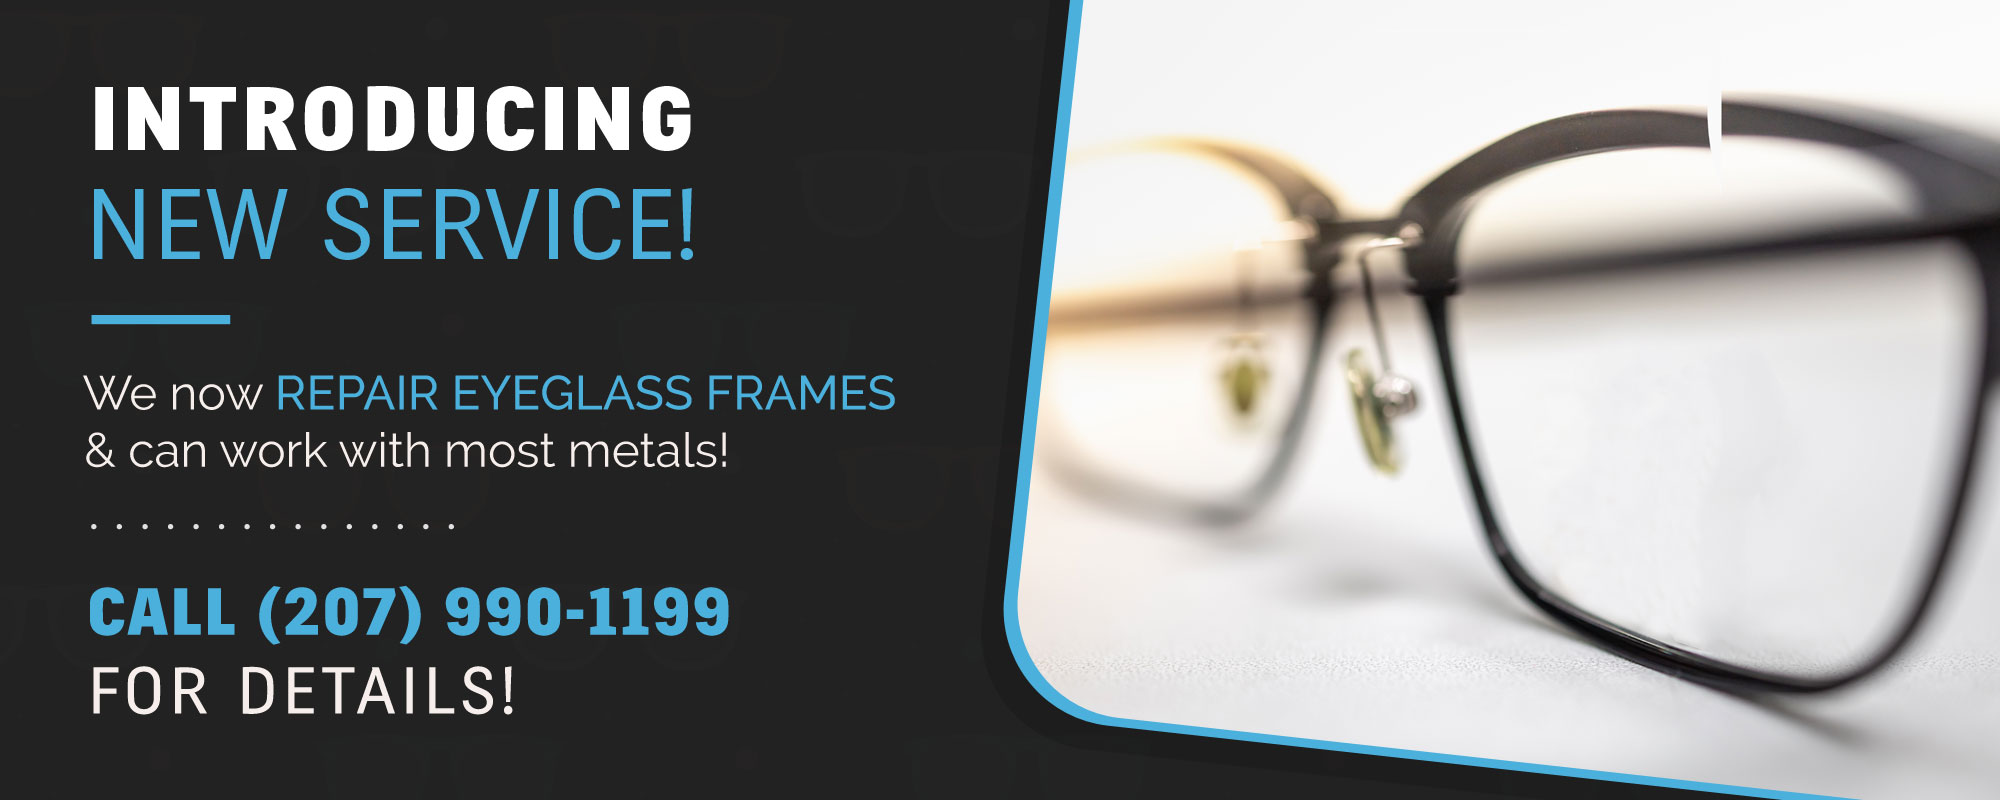 Eyeglass-Frame Repairs At Quality Jewelers